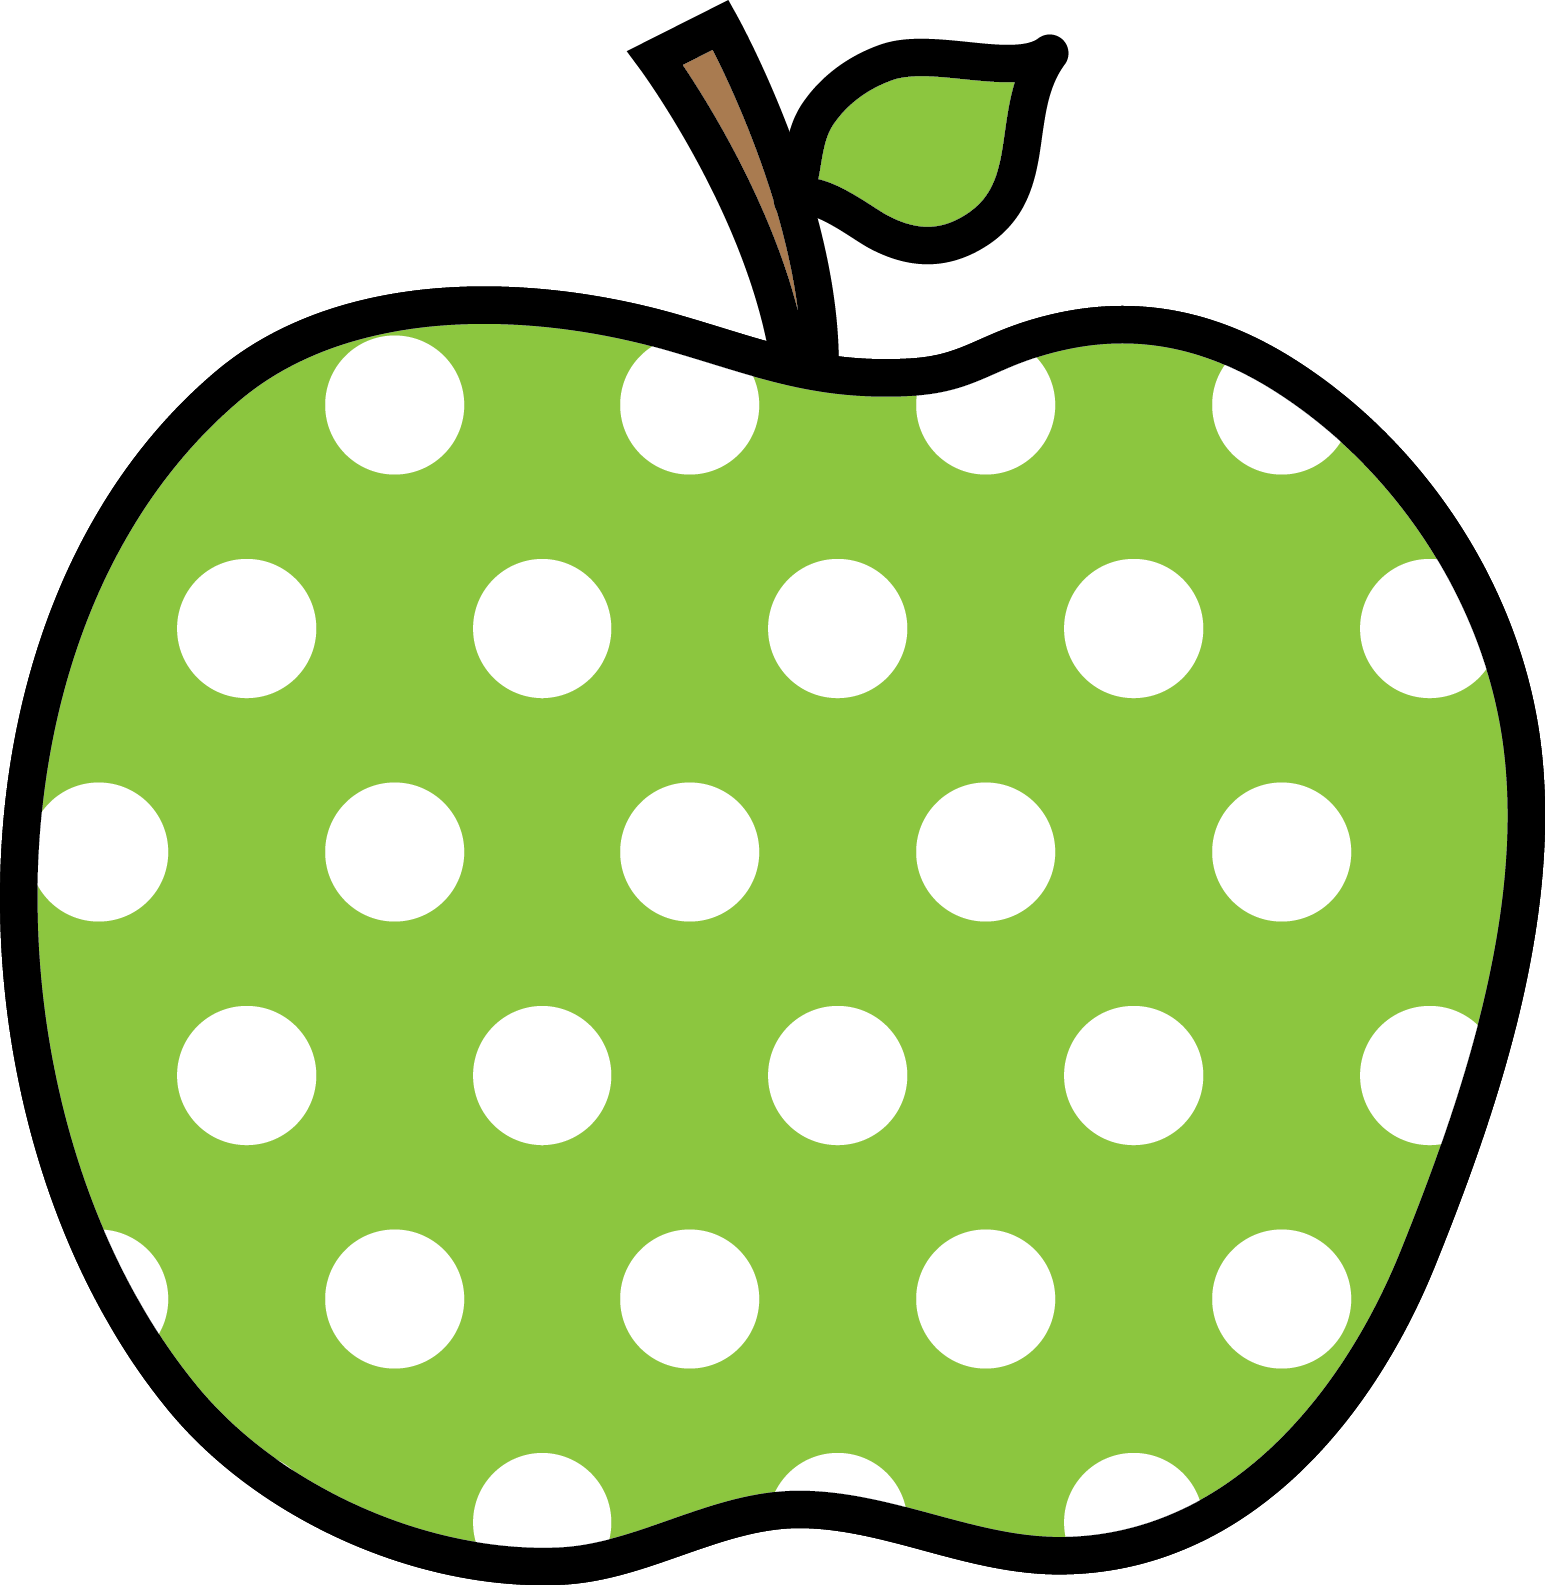 Cute apple clipart png free stock 28+ Collection of Polka Dot Apple Clipart | High quality, free ... png free stock